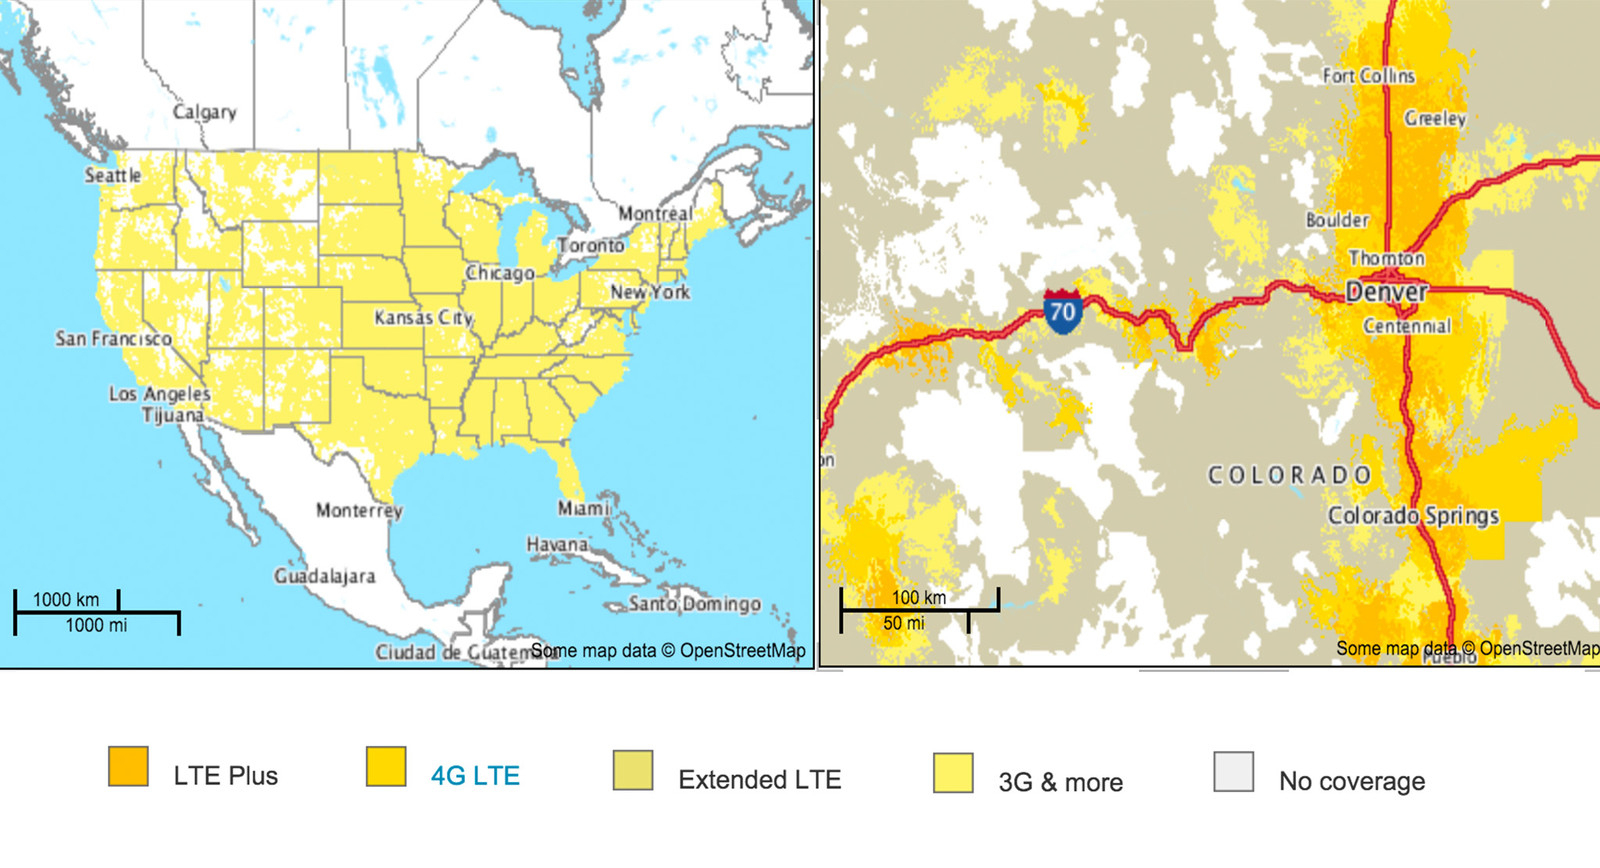 Sprint Data Coverage Map Hd Map Of At&t Coverage Map California - Sprint Coverage Map California